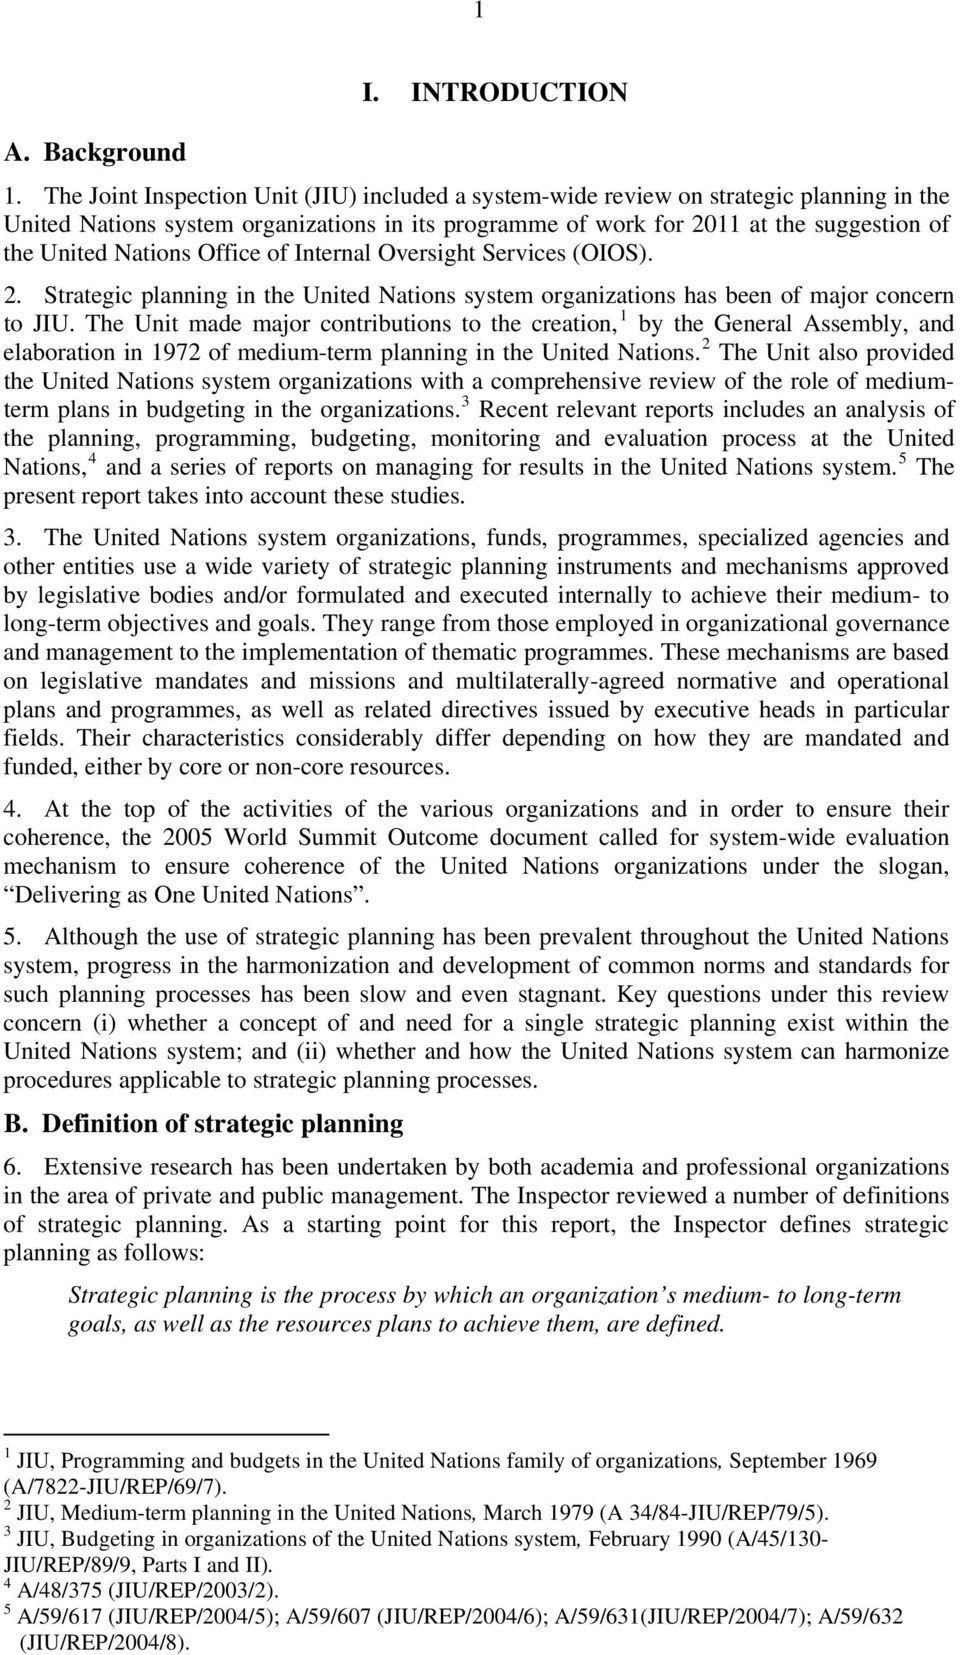 Nations Office of Internal Oversight Services (OIOS). 2. Strategic planning in the United Nations system organizations has been of major concern to JIU.